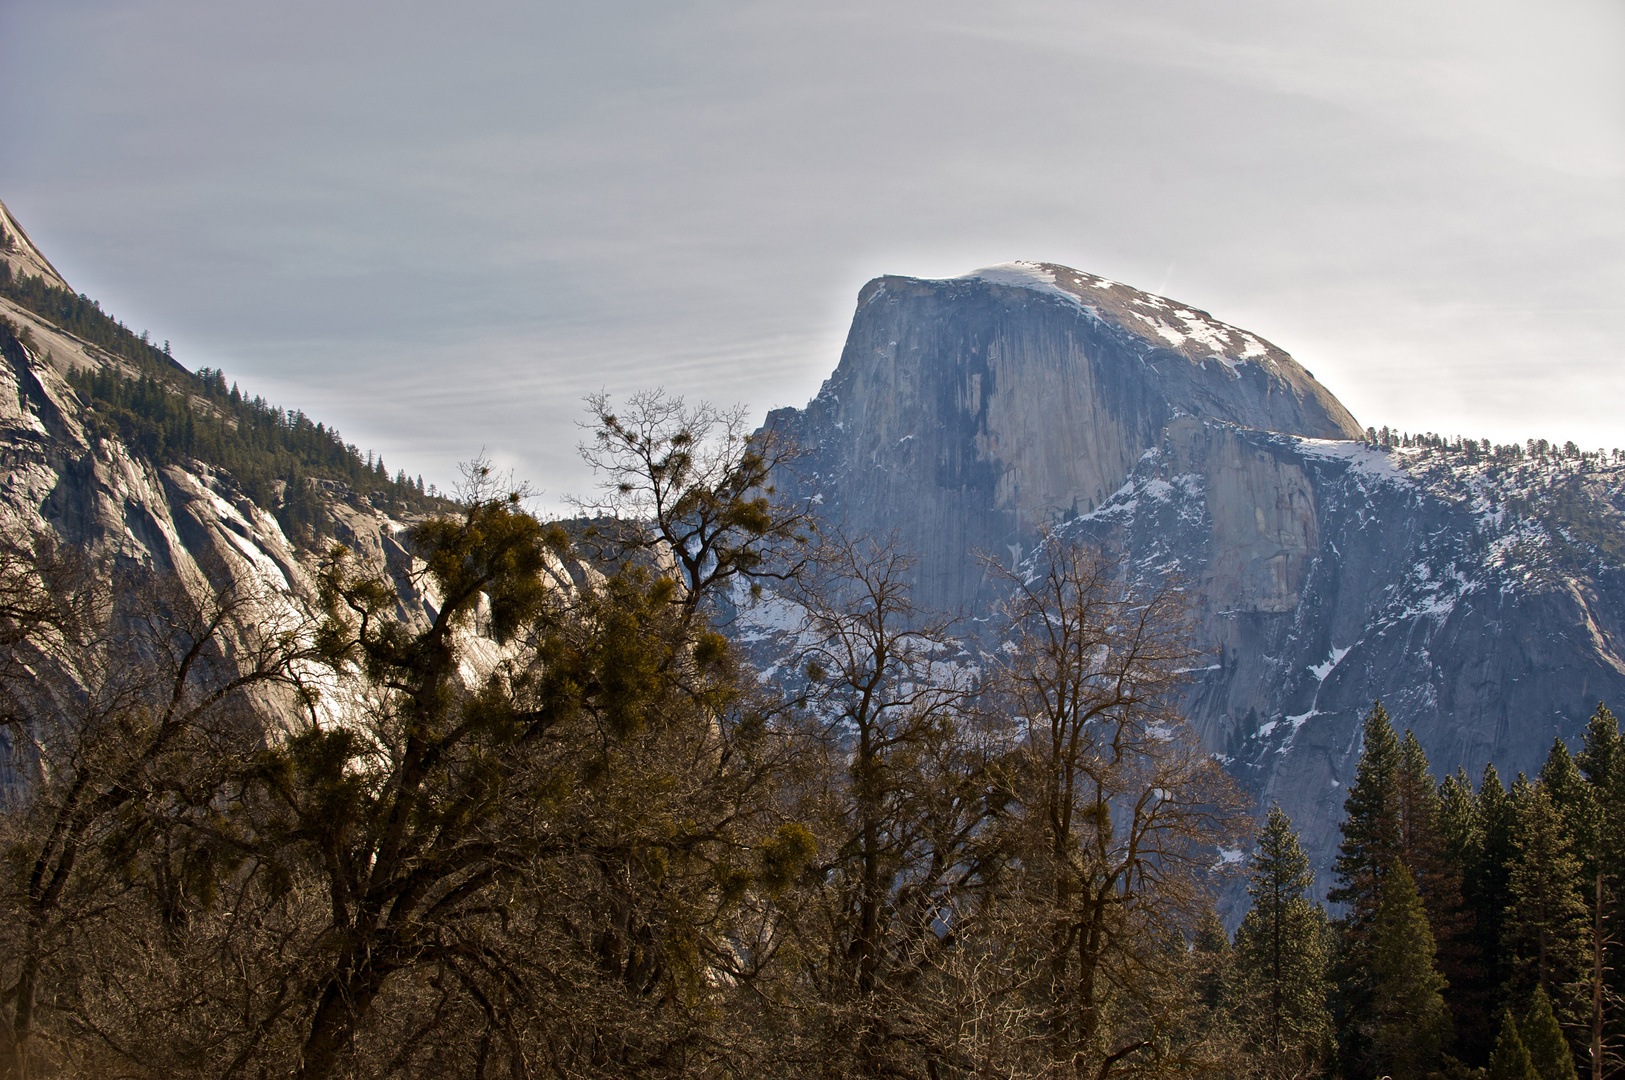 Storm Clouds over Half Dome